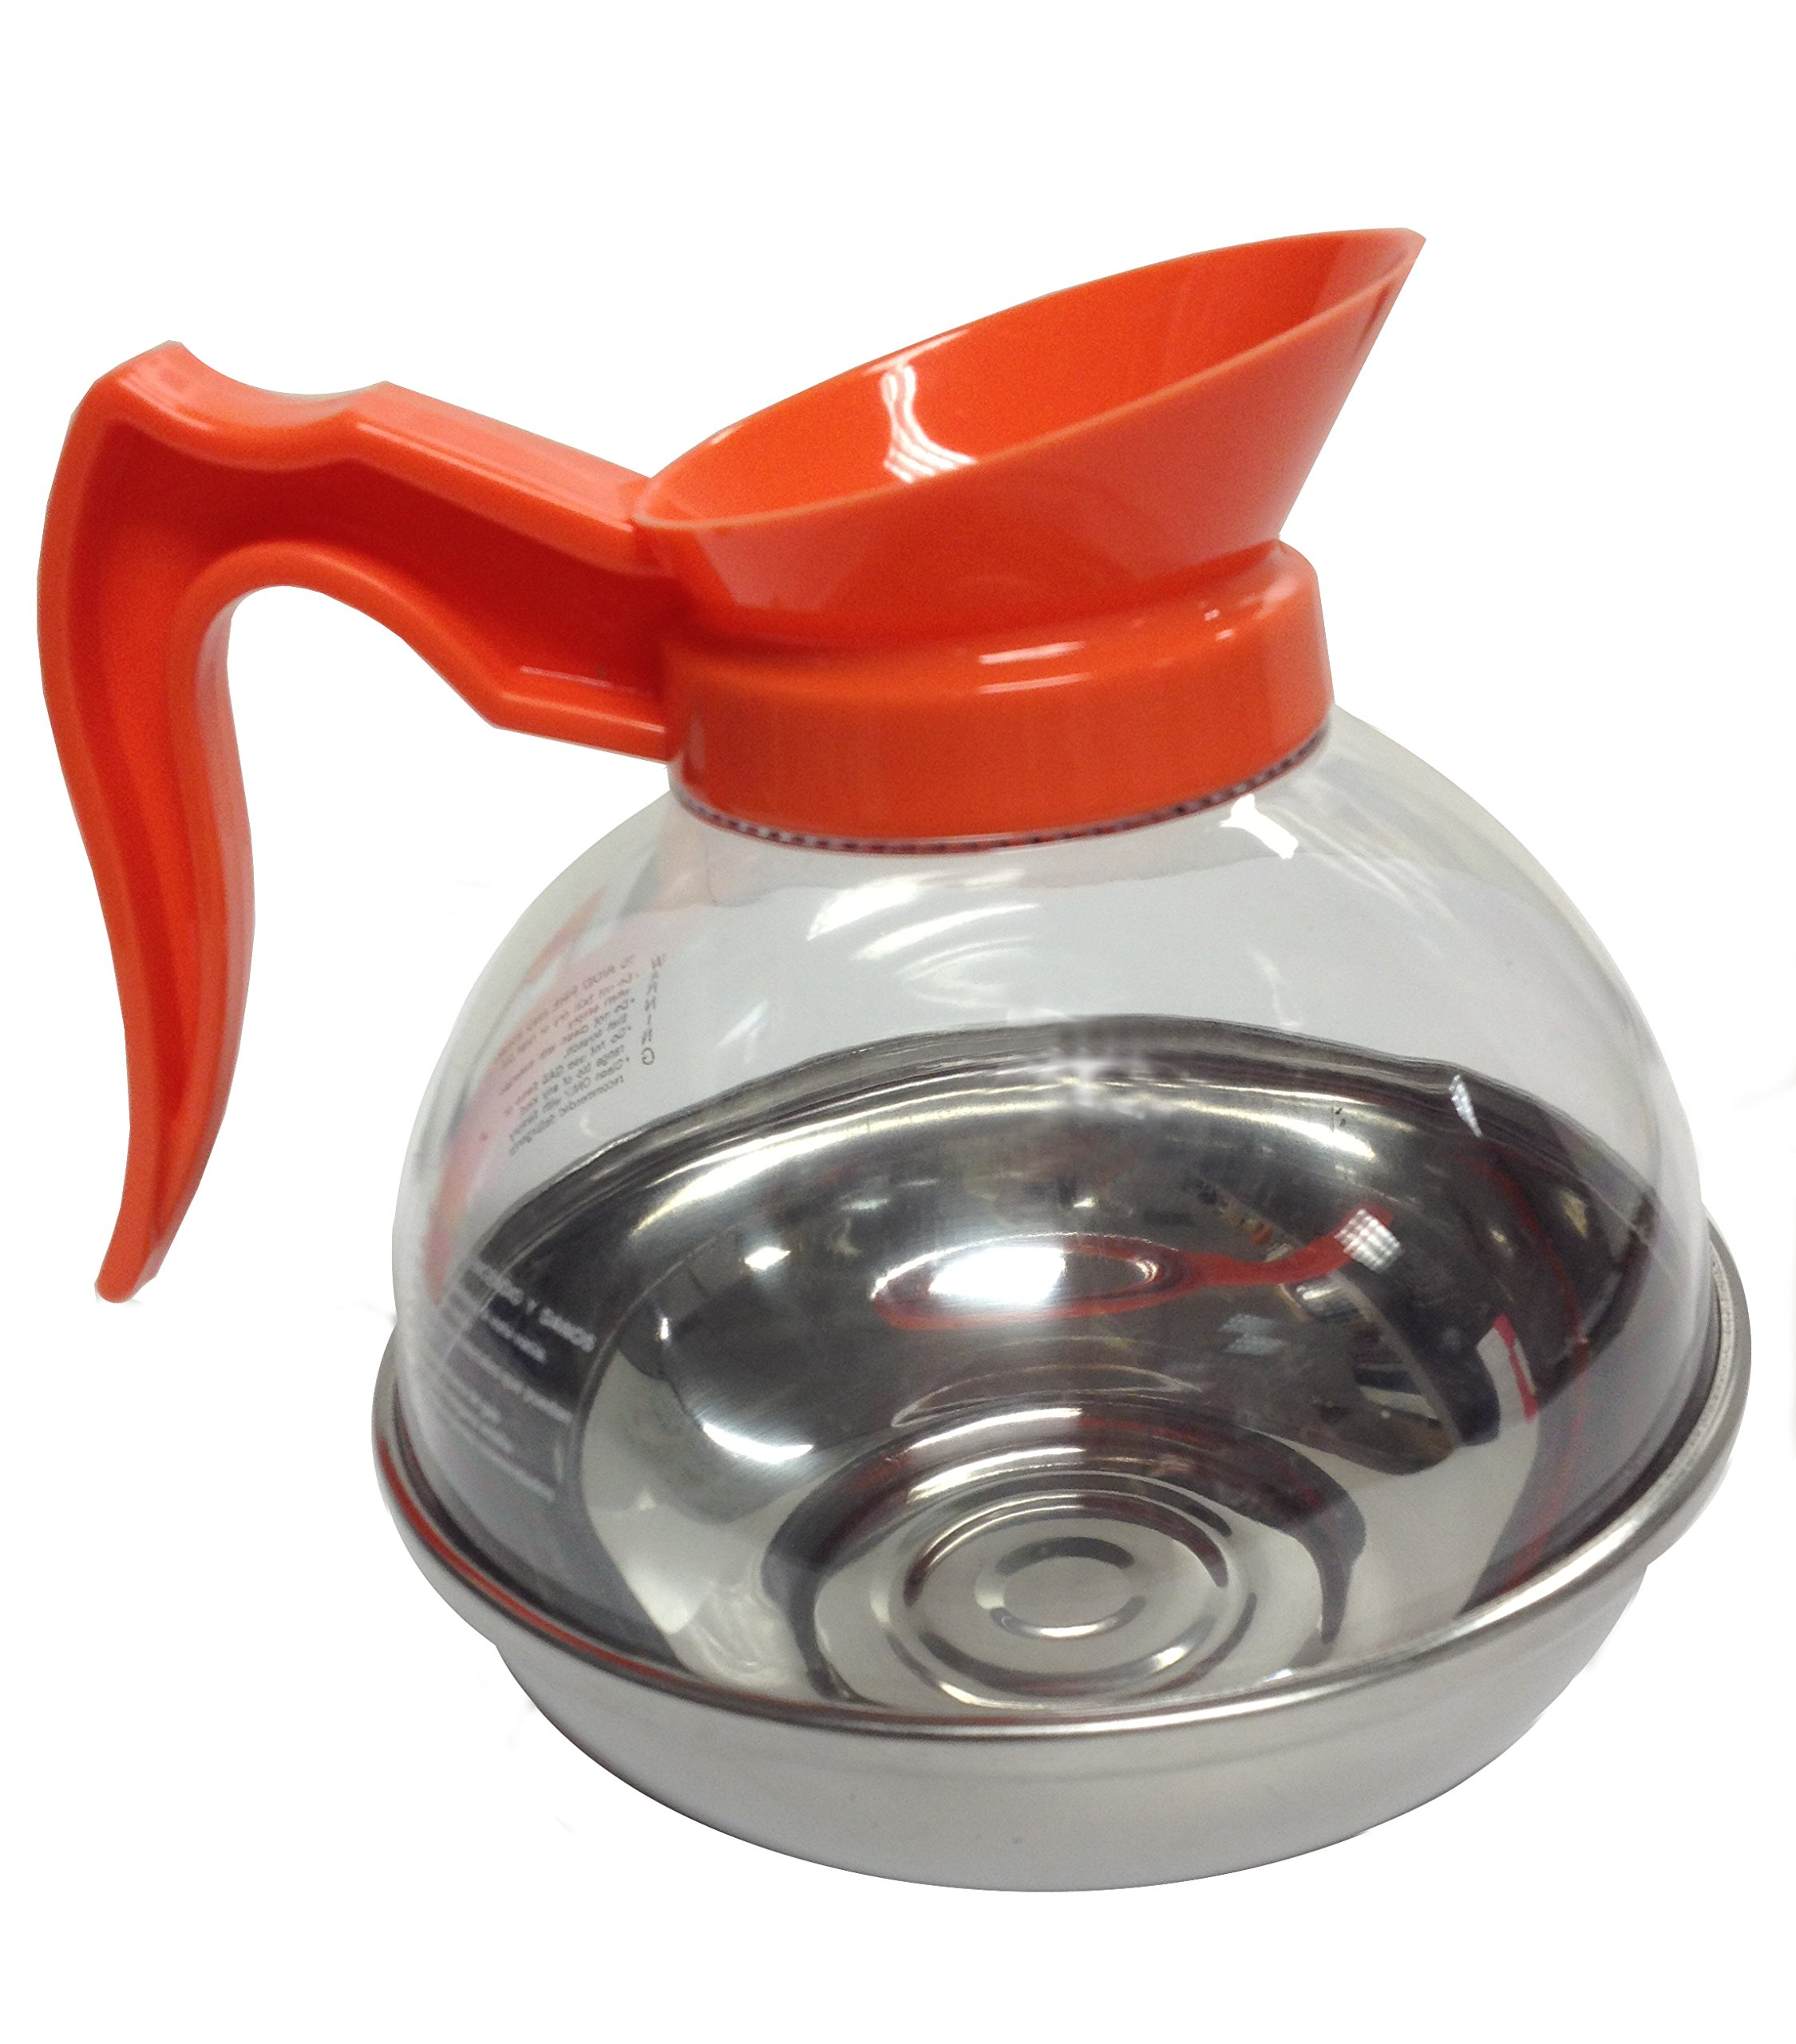 Bloomfield DCF8885O3 Decaf Unbreakable Decanter, Plastic with Stainless Steel Bottom, Orange Handle (Pack of 3)